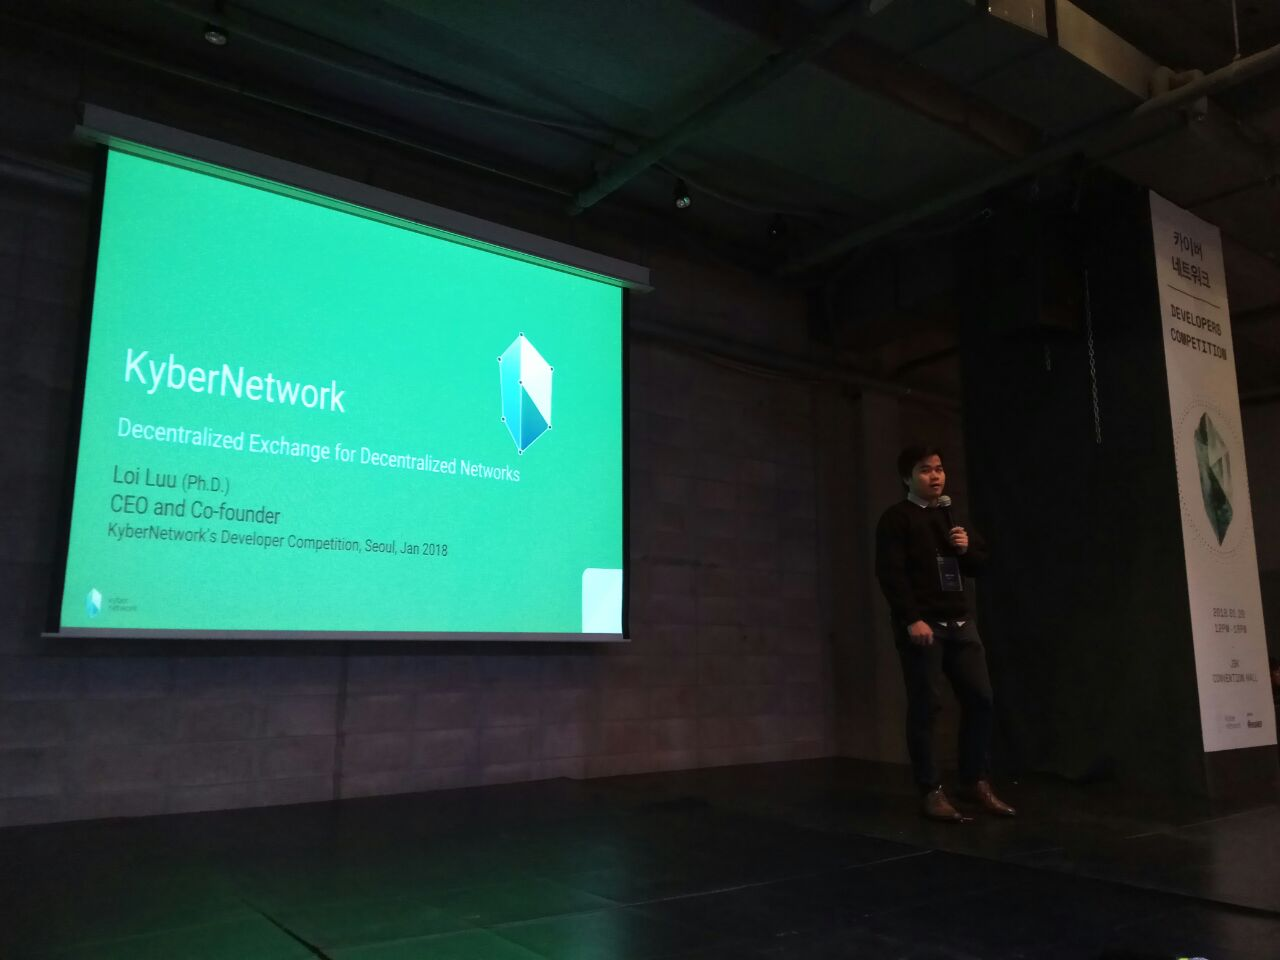 KyberNetwork Developers Competition - Jan. 20th, 2018 / cohosted by Hashed & KyberNetwork (with 200+ members)Many great blockchain projects - including WAX, Gifto, AppCoins, CoinManager, and ICON - also stood up and talked about how they could integrate with KyberNetwork.